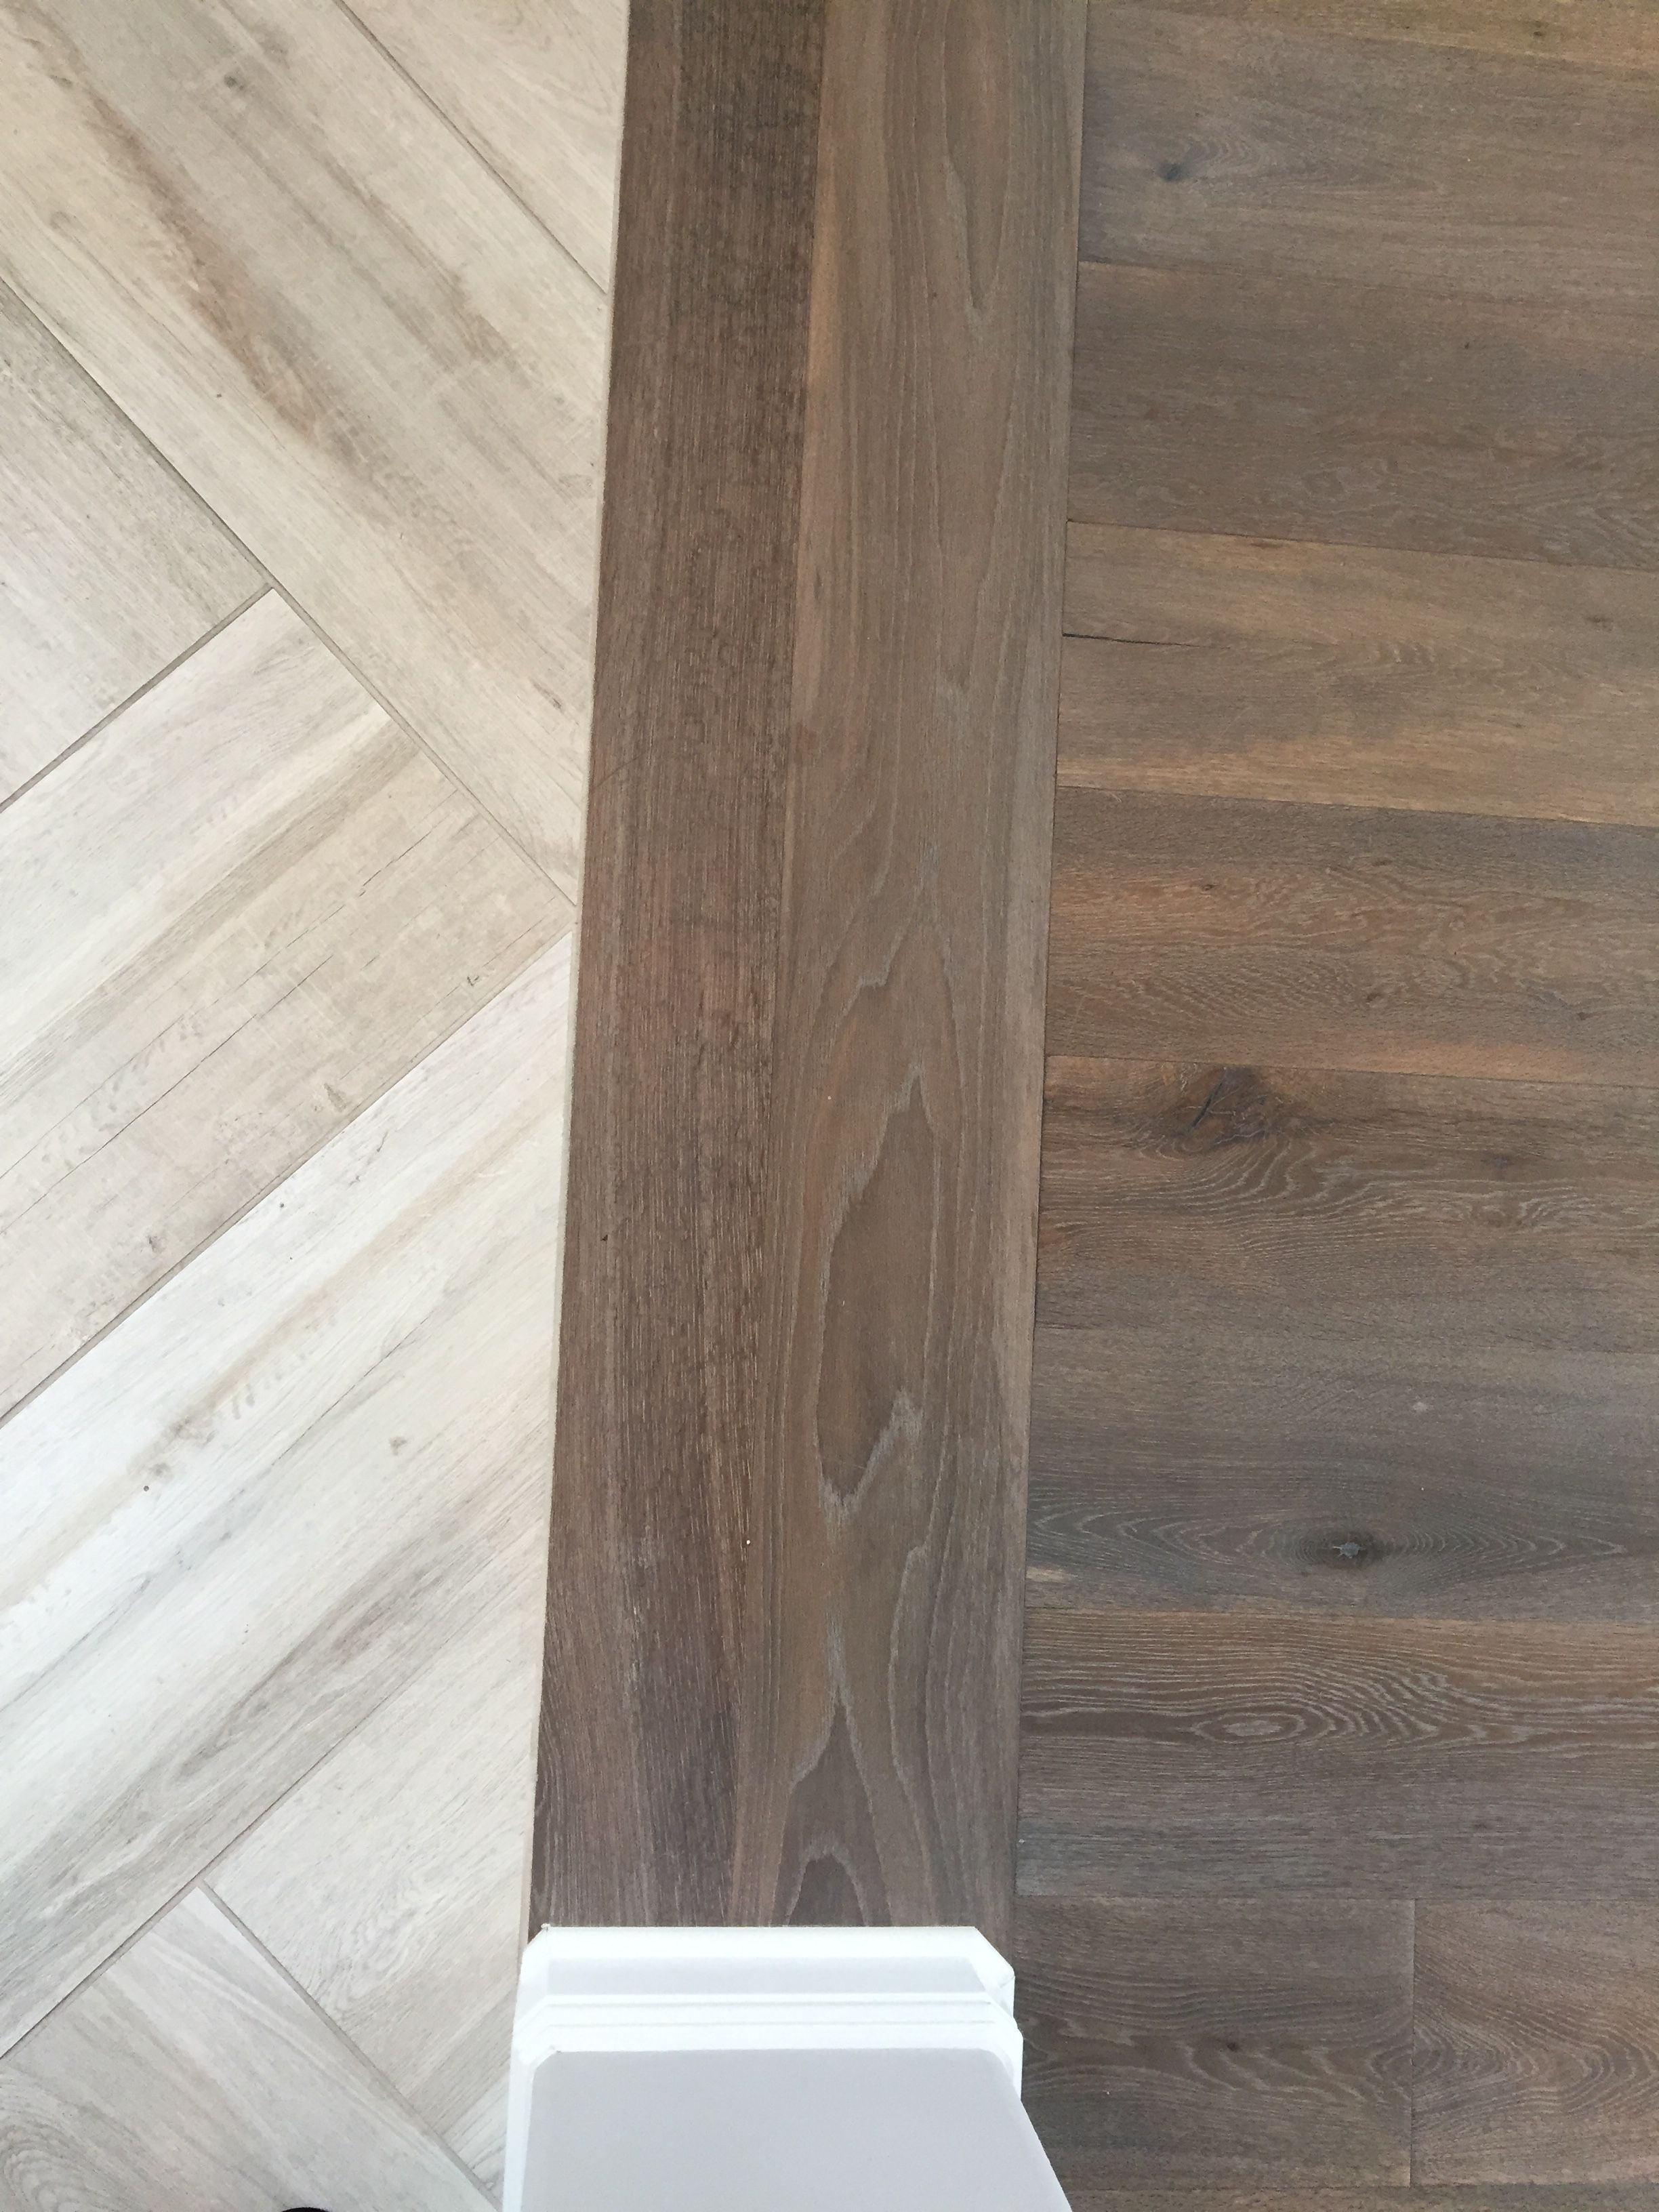 hardwood floor stain colors popular of floor transition laminate to herringbone tile pattern model inside floor transition laminate to herringbone tile pattern